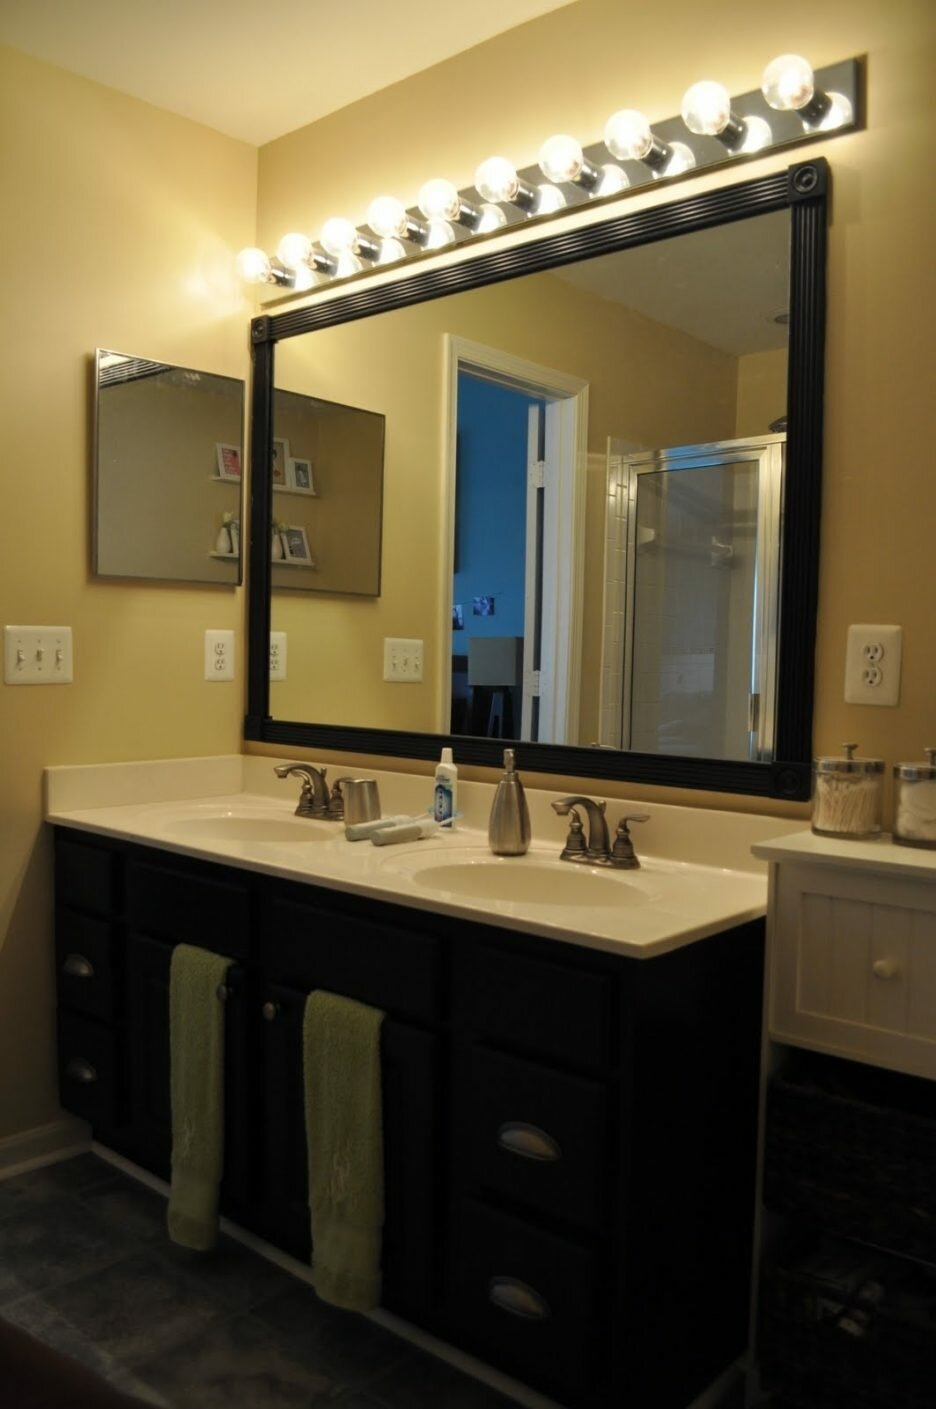 Corner Bathroom Vanity | Pottery Barn Vanity | Pottery Barn Bathroom Cabinet